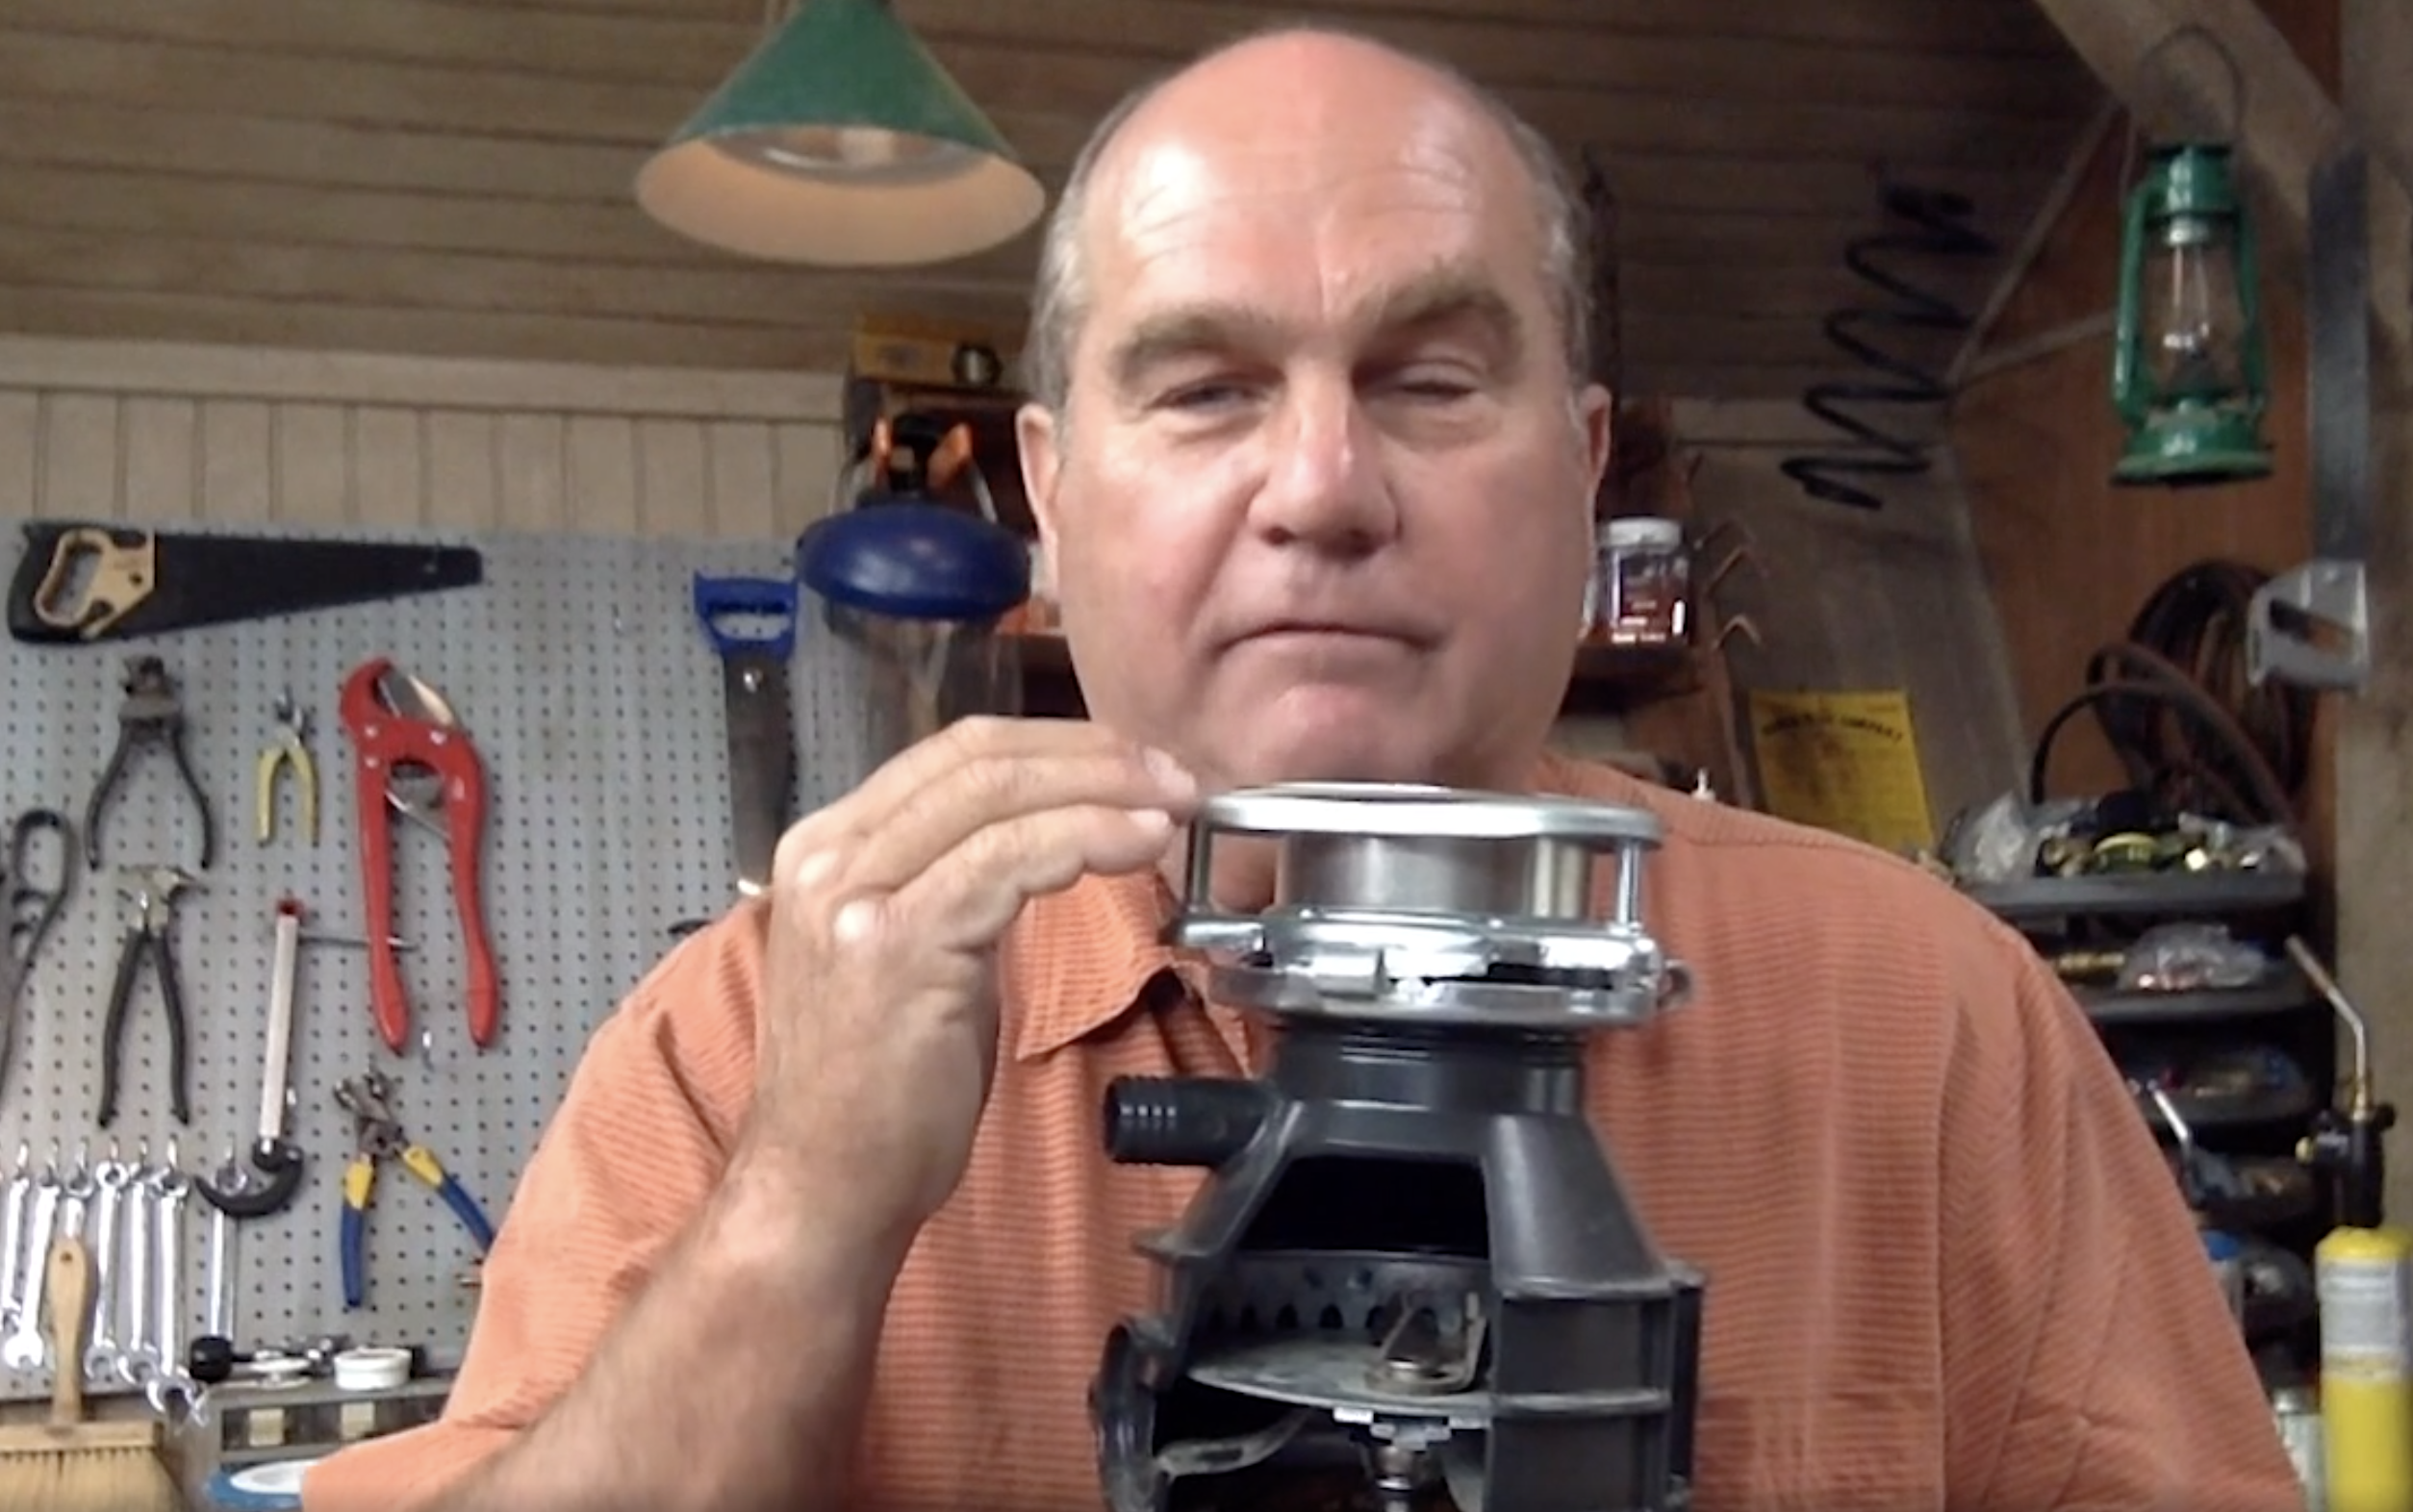 Richard Trethewey shows the inner workings of a garbage disposer.